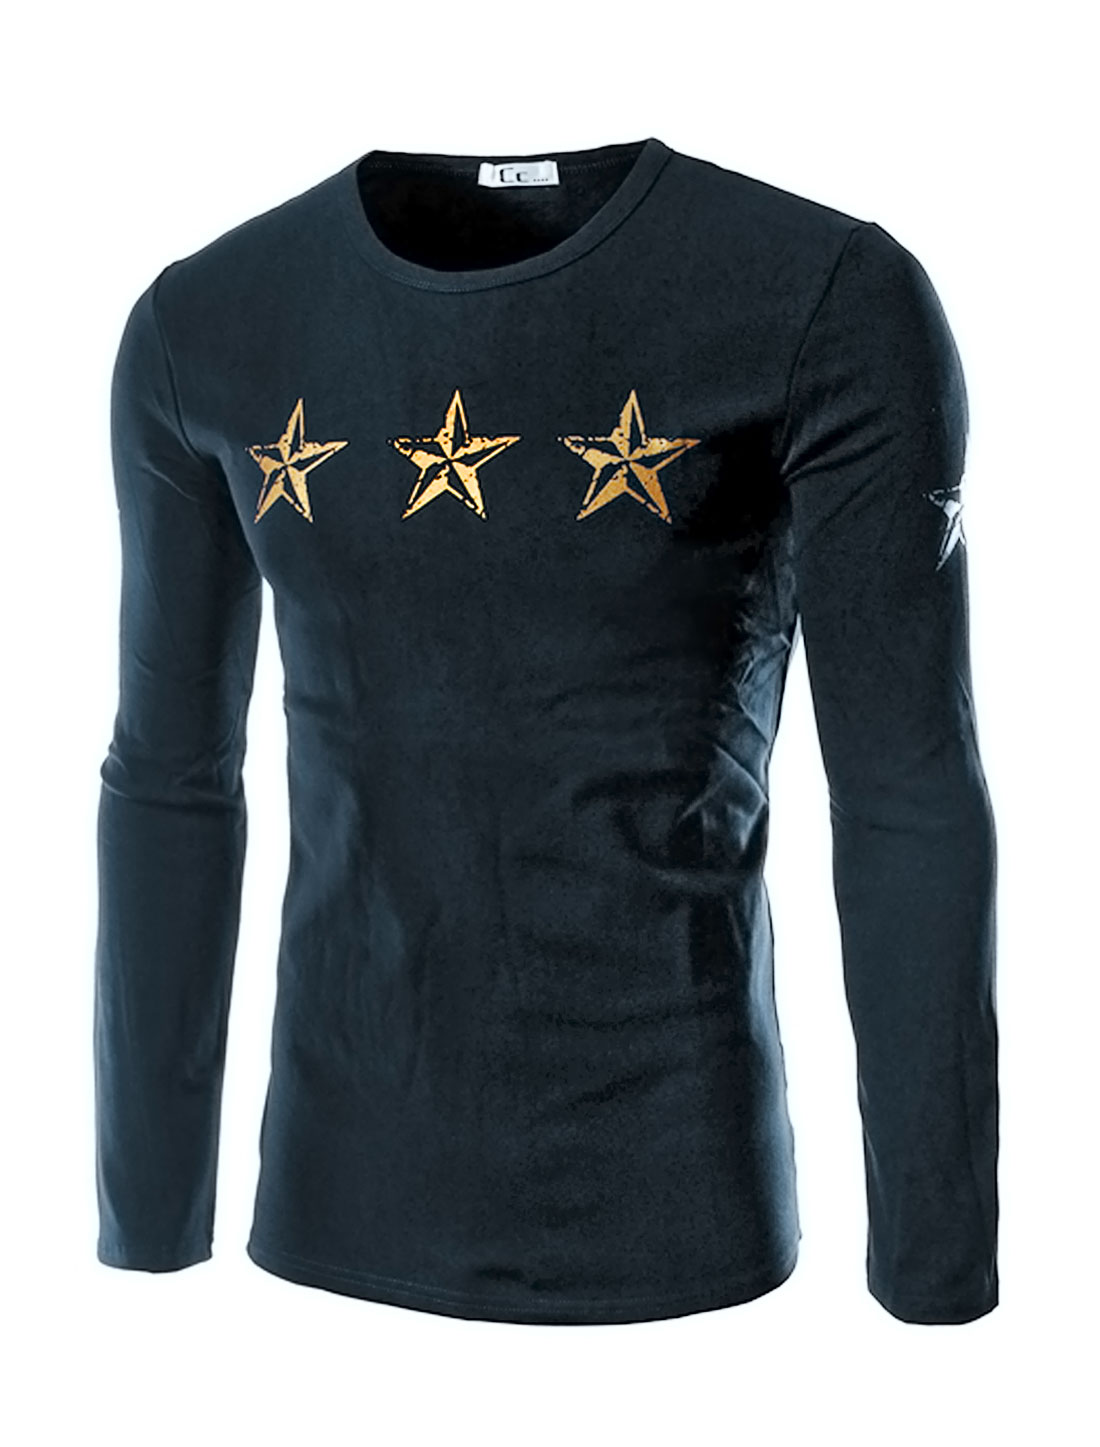 Men Crew Neck Stars Letters Slim Fit Tee Shirt Blue M